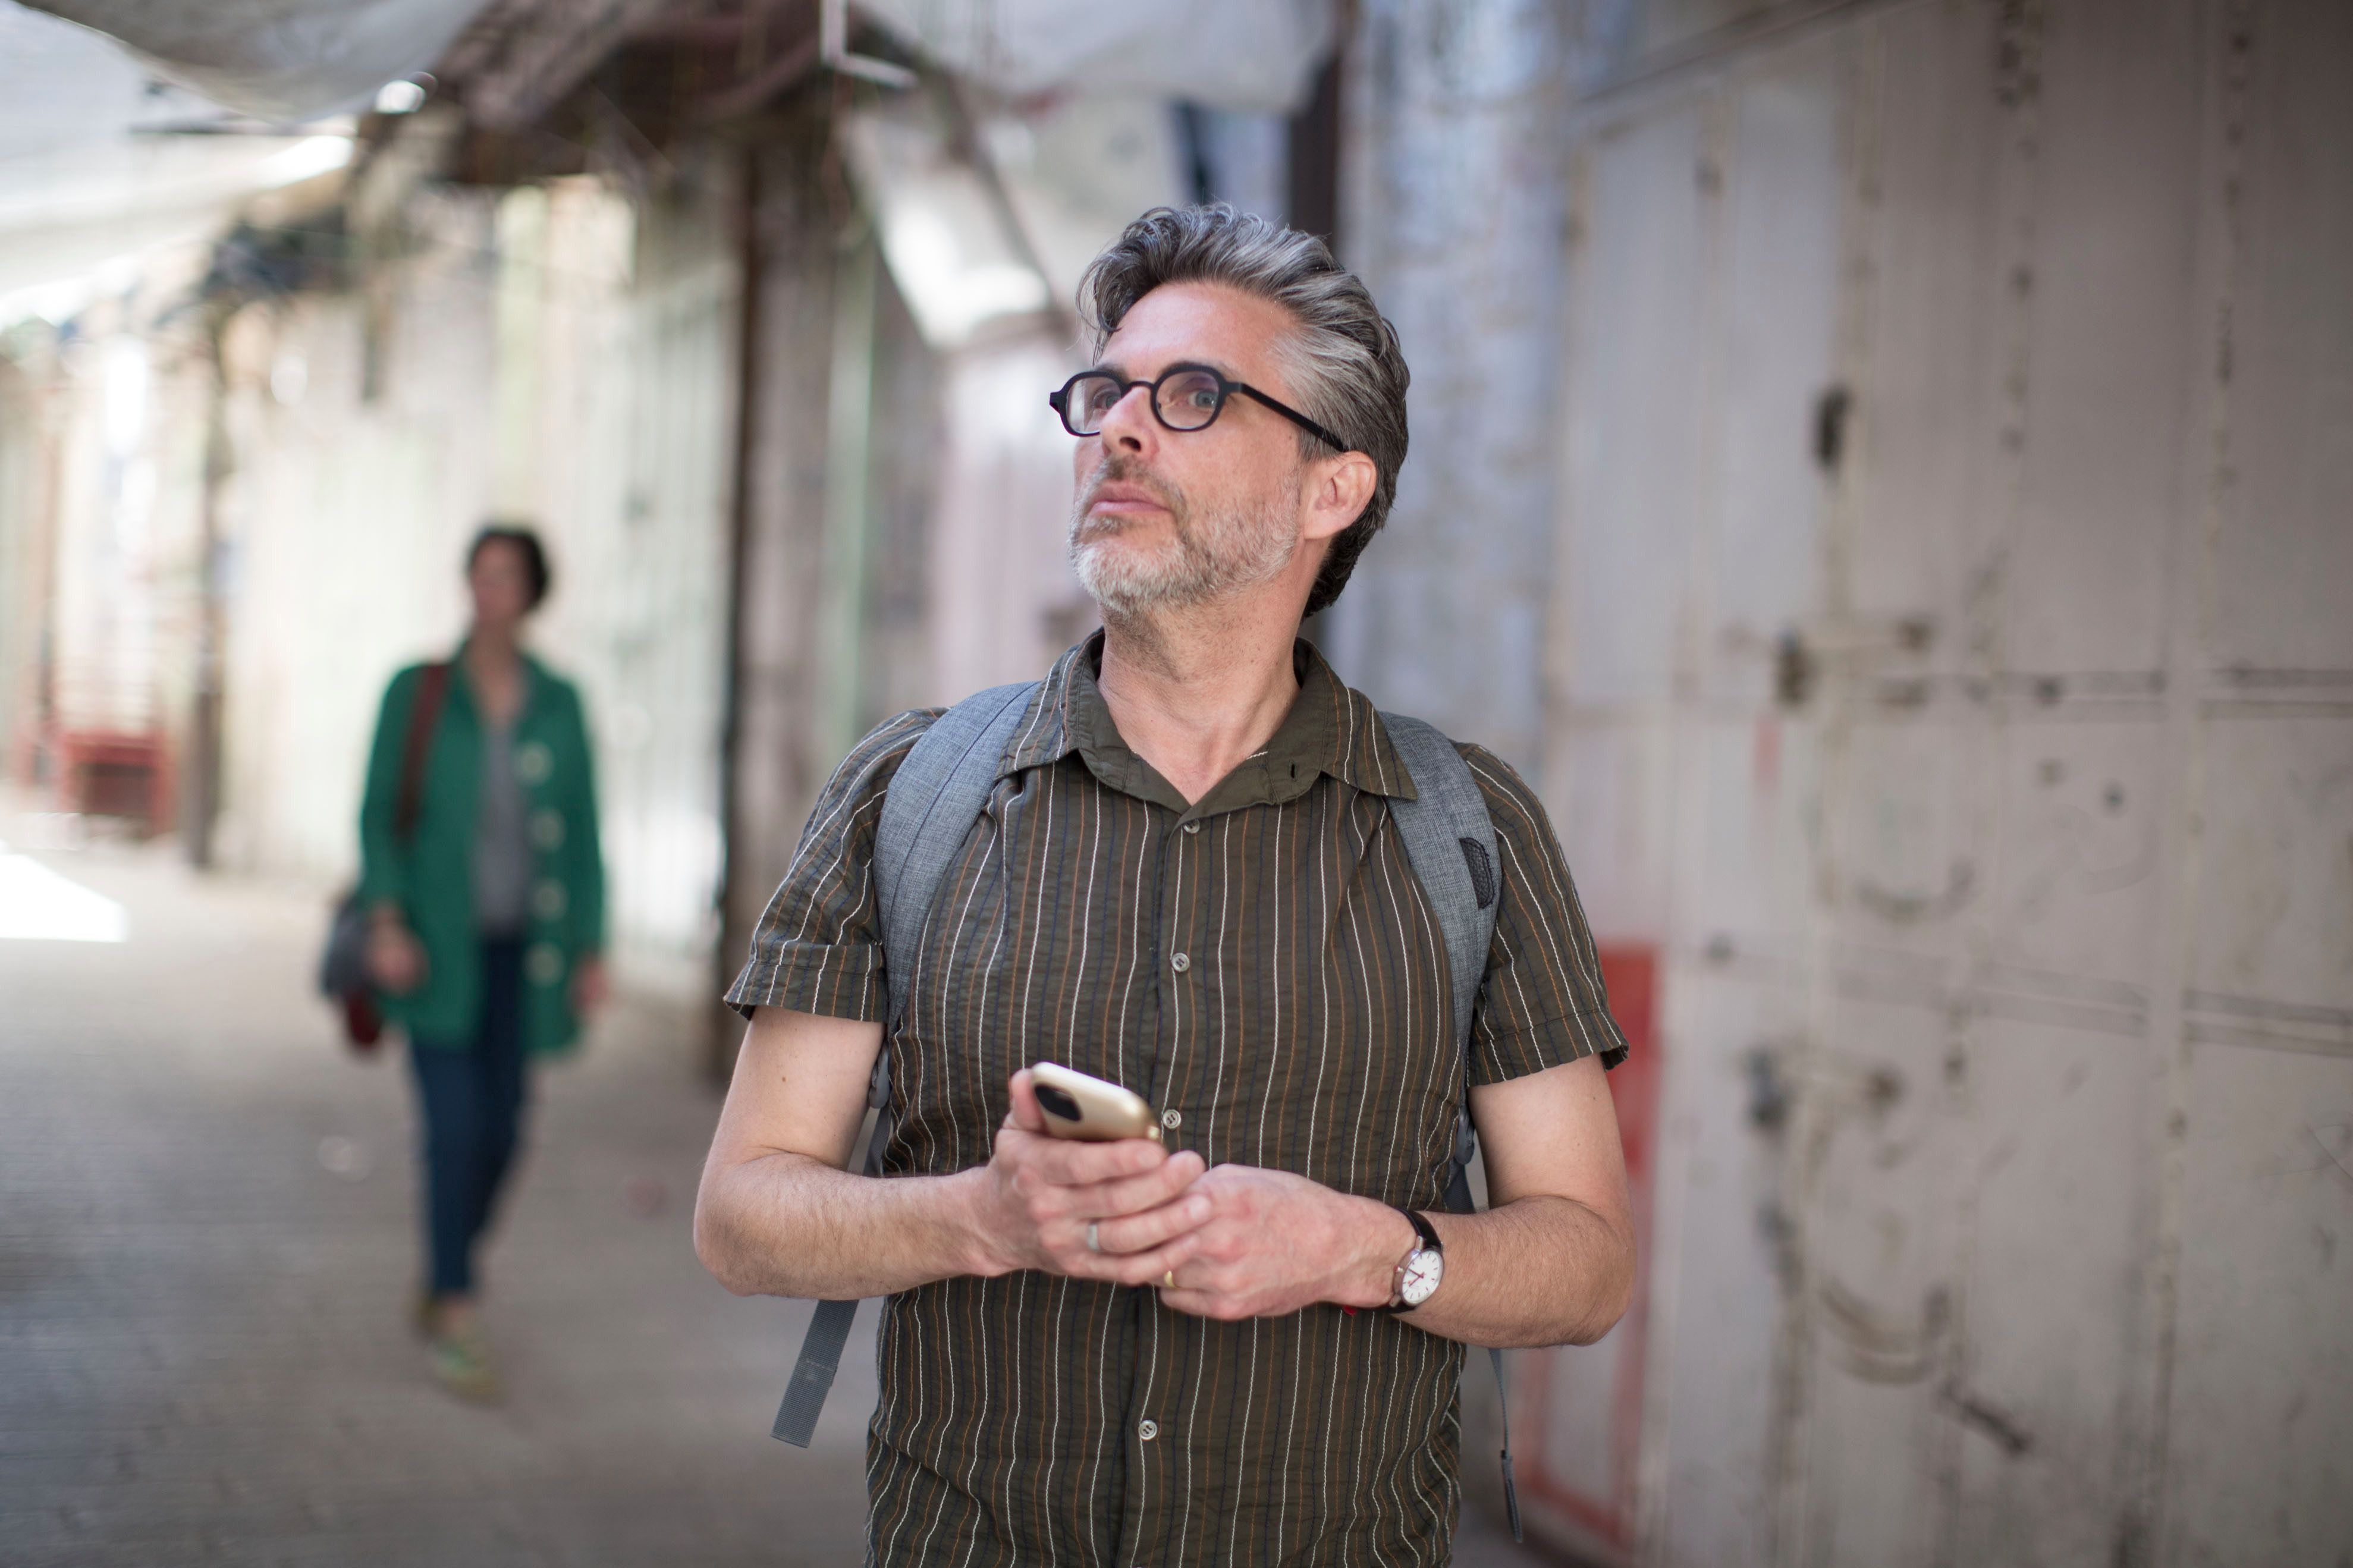 Author Michael Chabon has long tried to justify Israel's actions toward Palestinians, but told the Forward he can't do so anymore after a West Bank Tour.